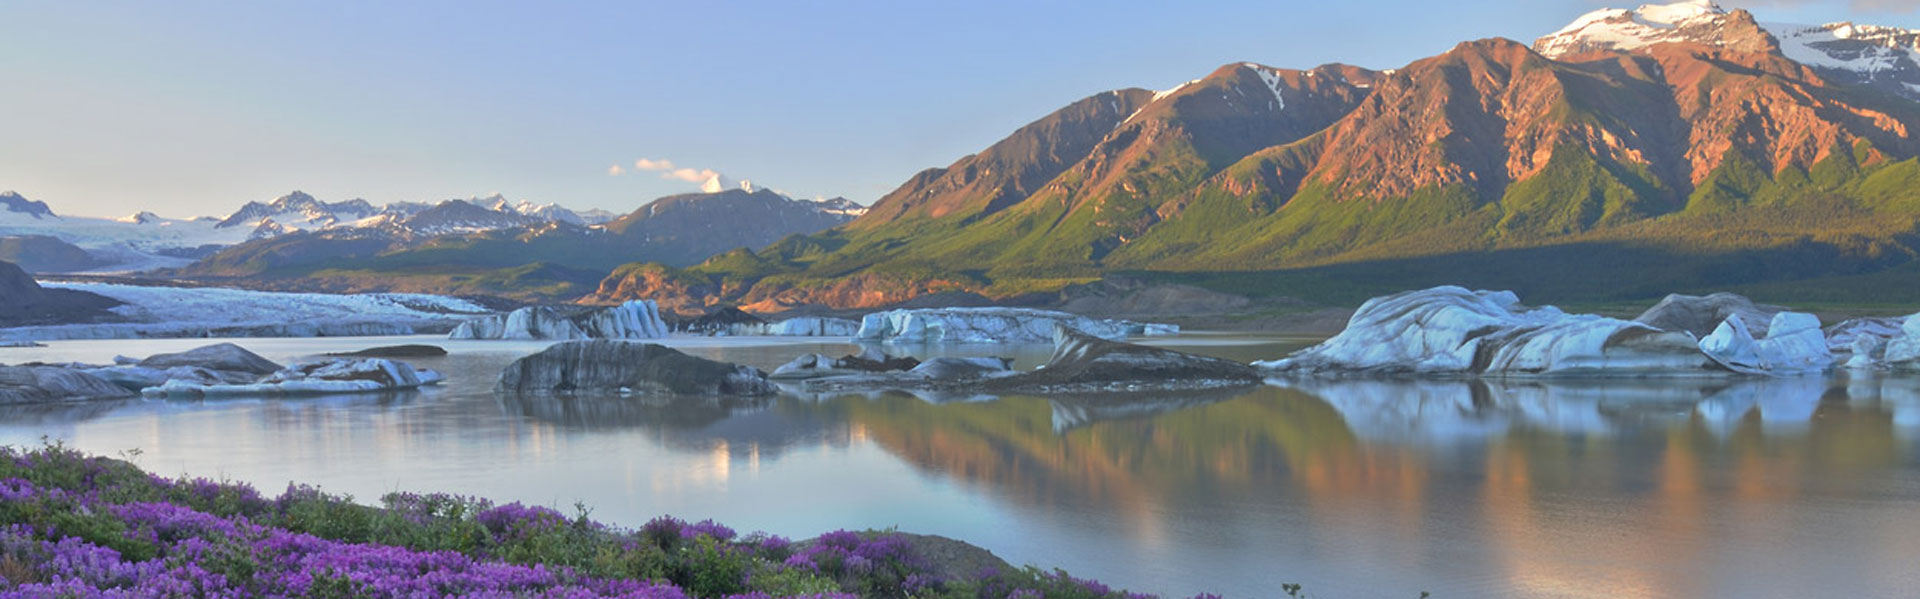 Wrangell St. Elias National Park | Wrangell St. Elias National Park Remote Lodges & Activities